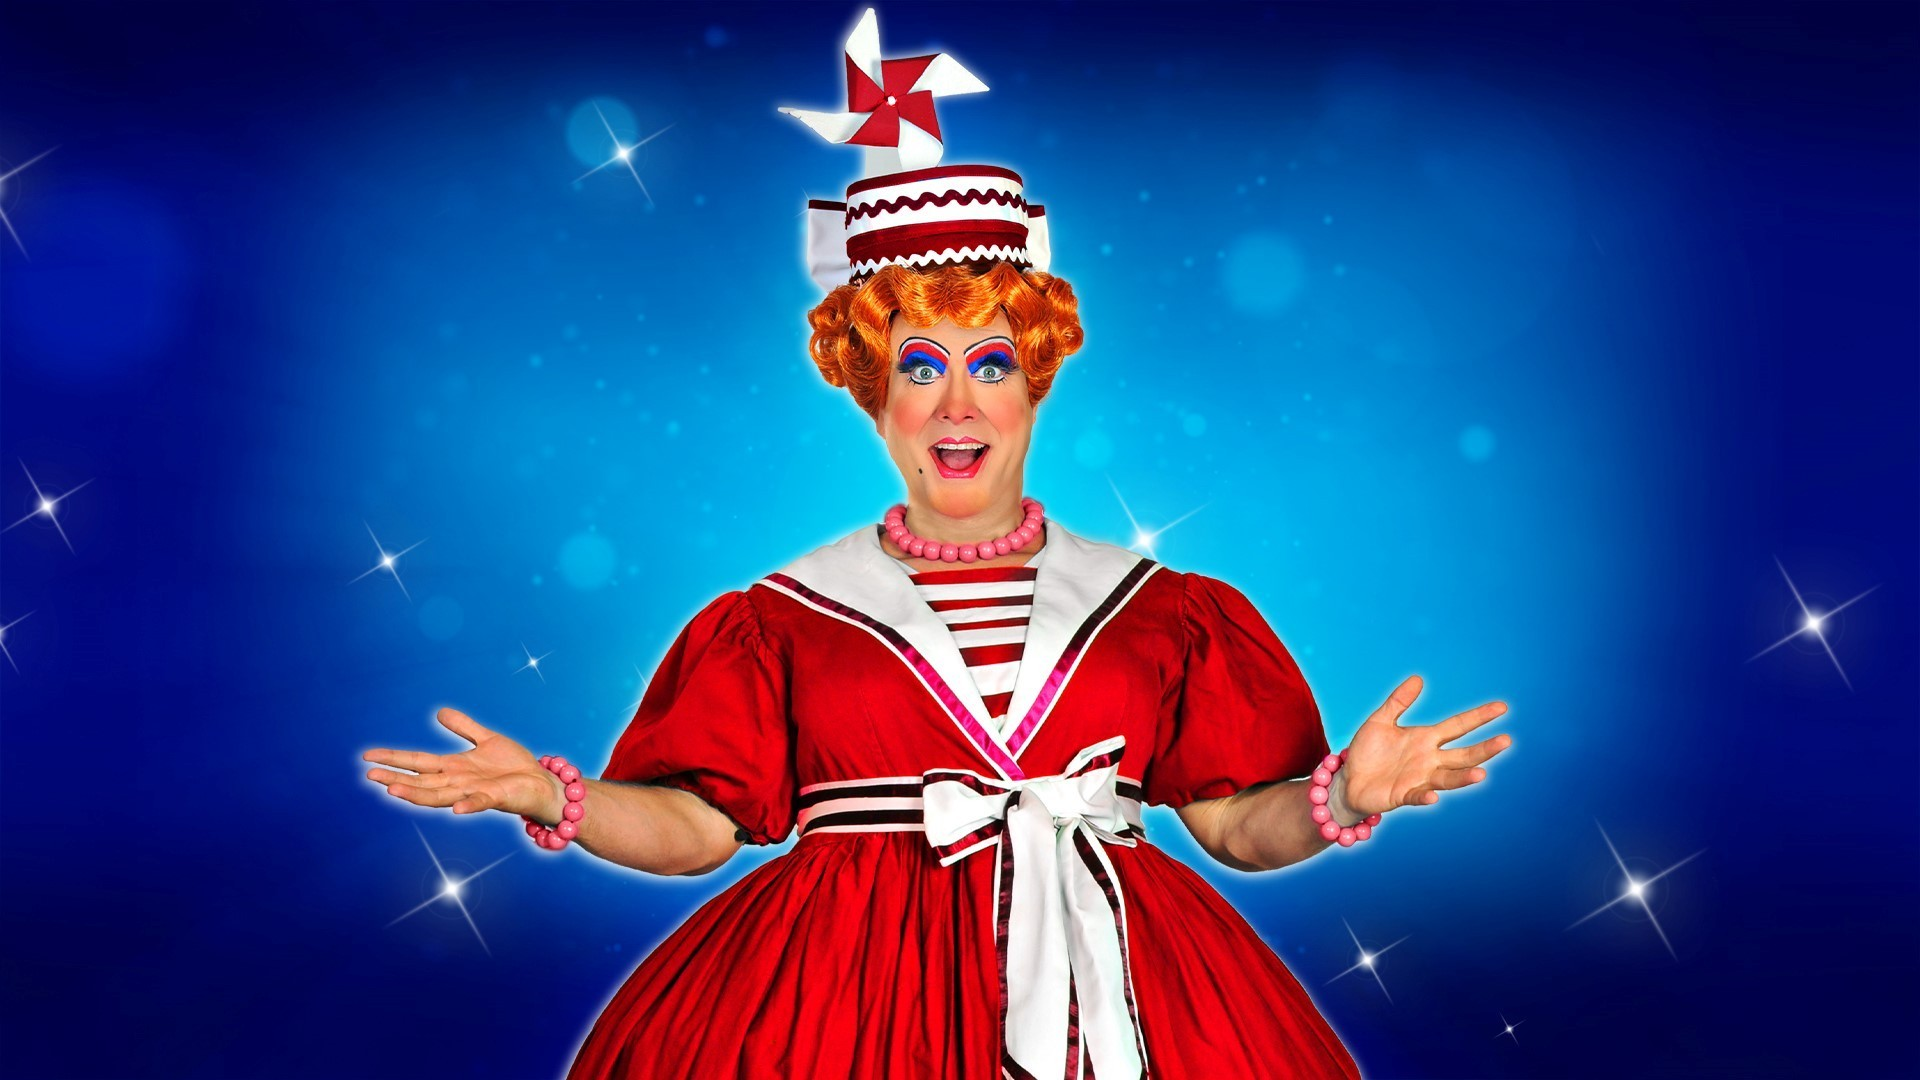 Oh yes it is... the panto's coming back!